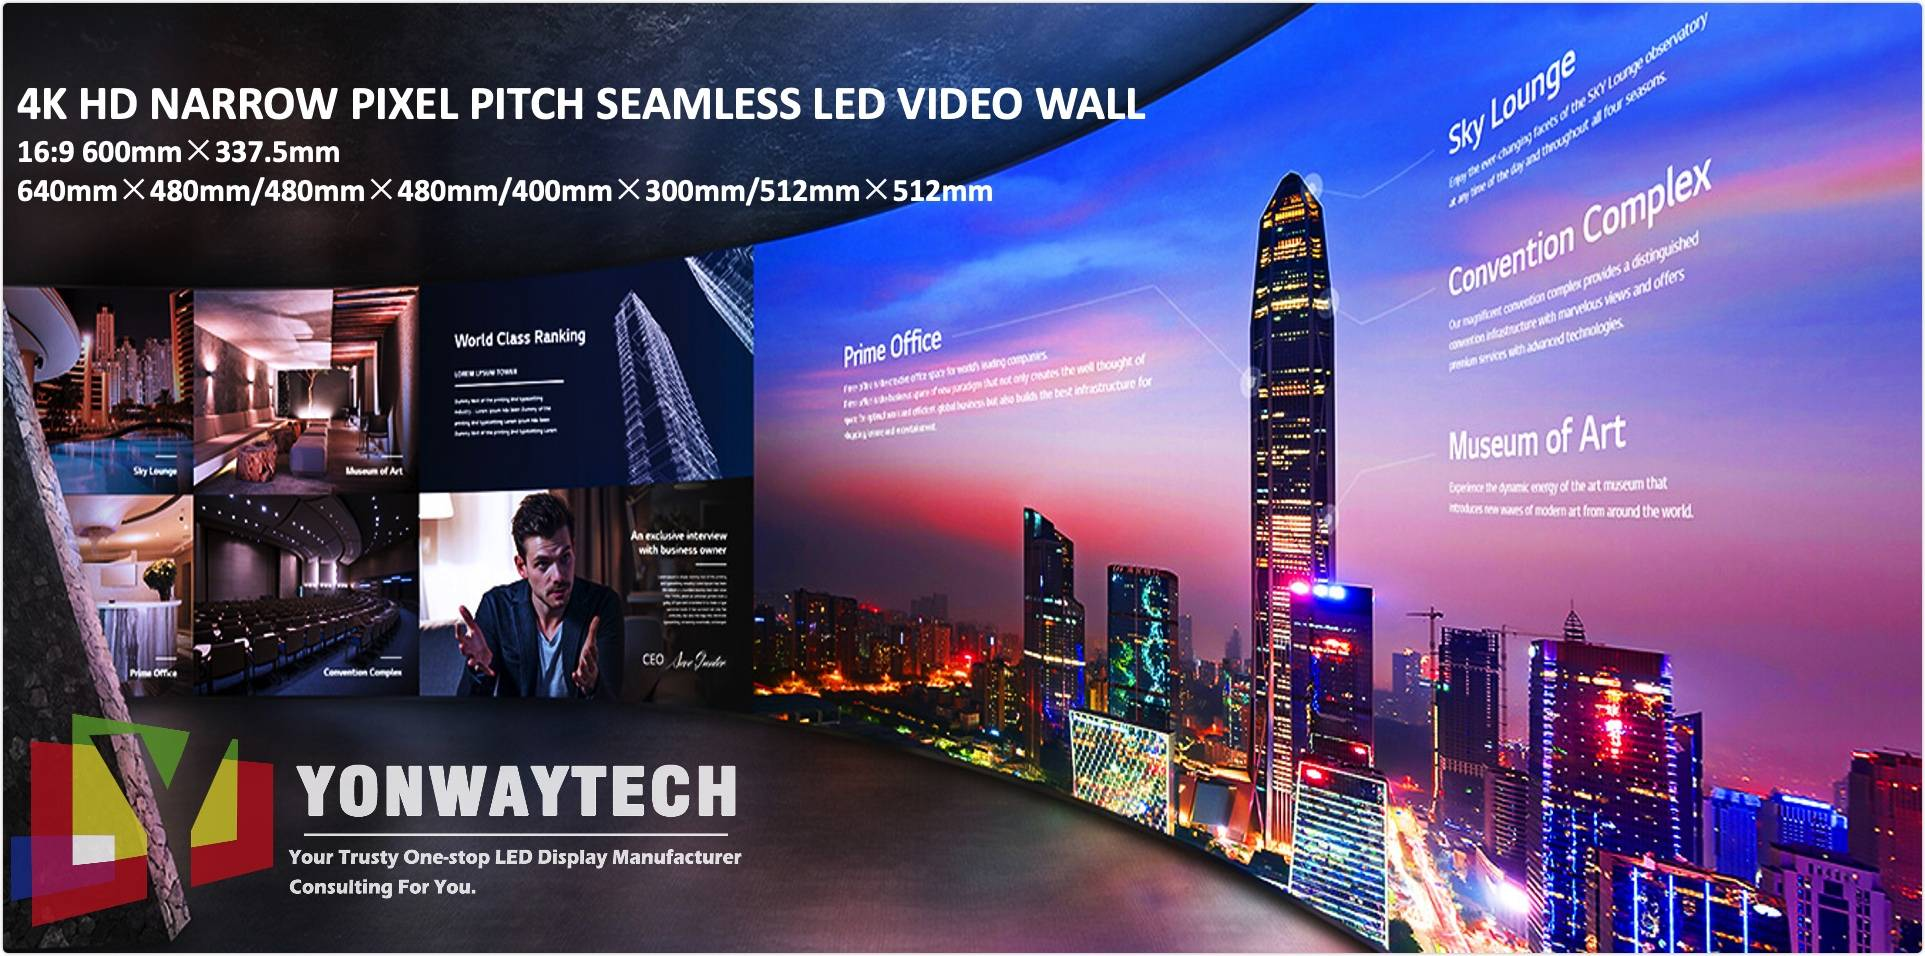 4K HD NARROW PIXEL PITCH LED VIDEOWALL P0.9375,P1.25,P1.56,P1.667,P1.83,P1.86,P1.923,P2,P2.5